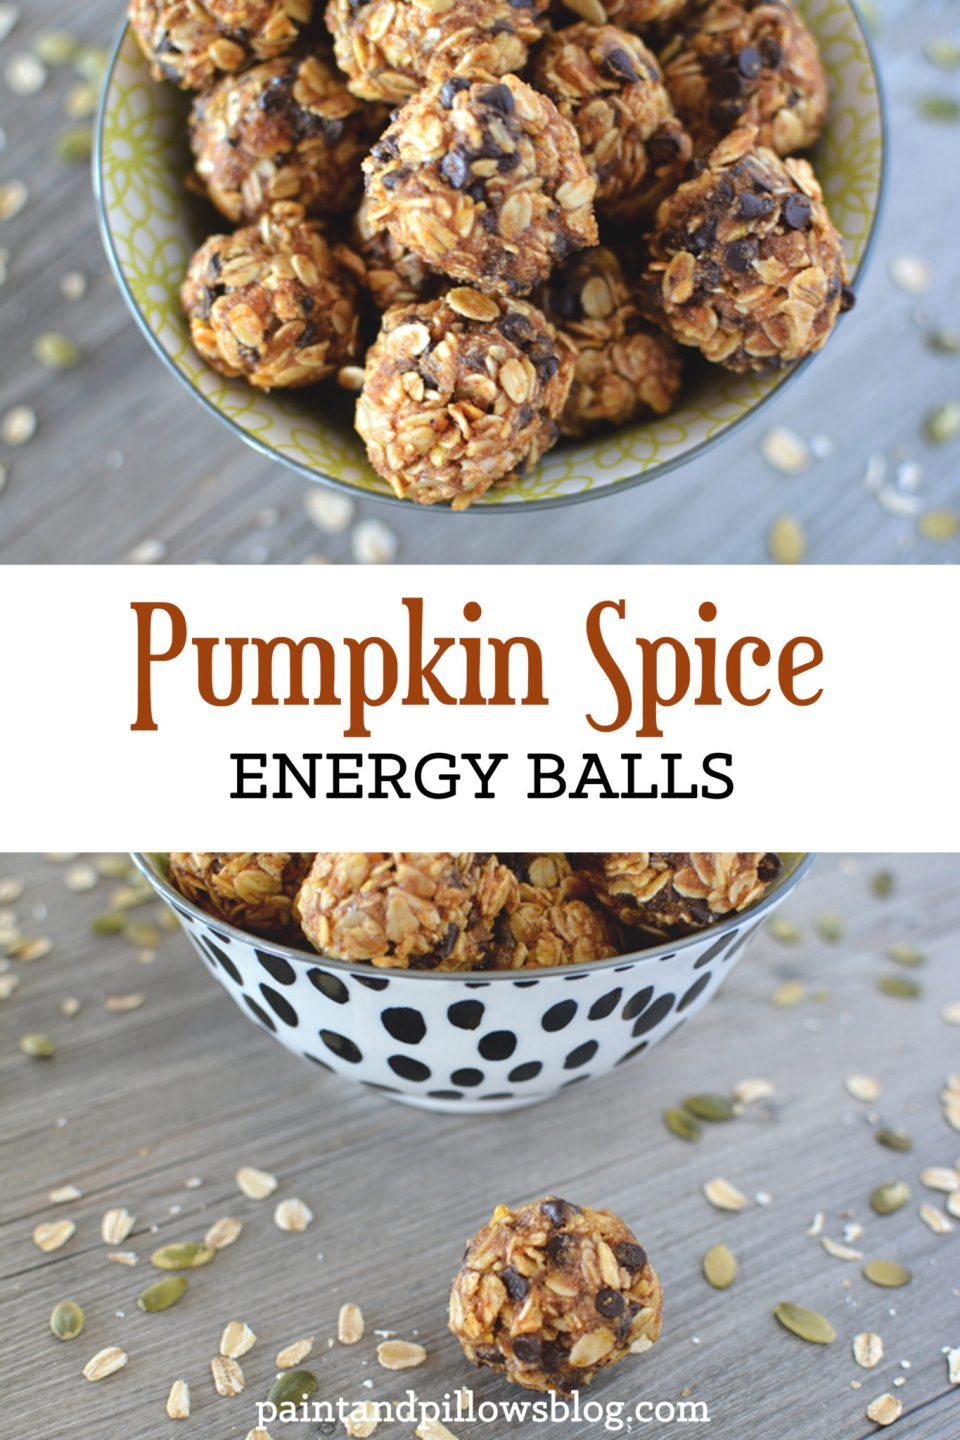 Pumpkin Spice Energy Balls (and a Pumpkin Round-Up)